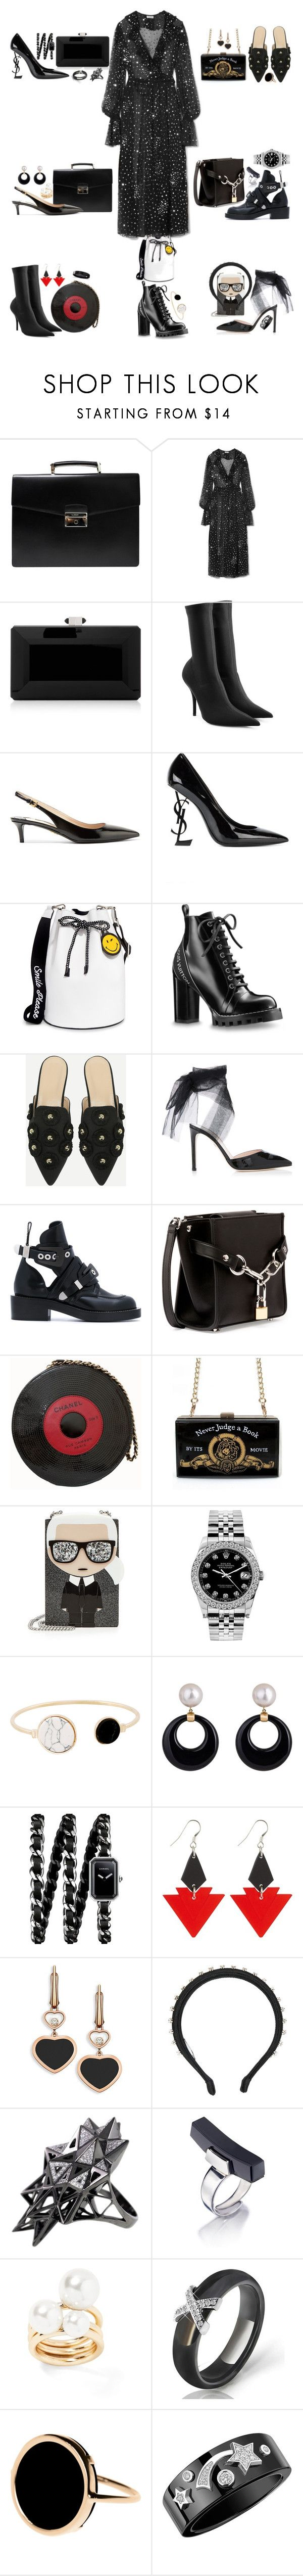 """All you need is black ♠️"" by shpurikova ❤ liked on Polyvore featuring Prada, Ashish, Judith Leiber, Balenciaga, Yves Saint Laurent, Joshua's, Alexander Wang, Chanel, Karl Lagerfeld and Rolex"